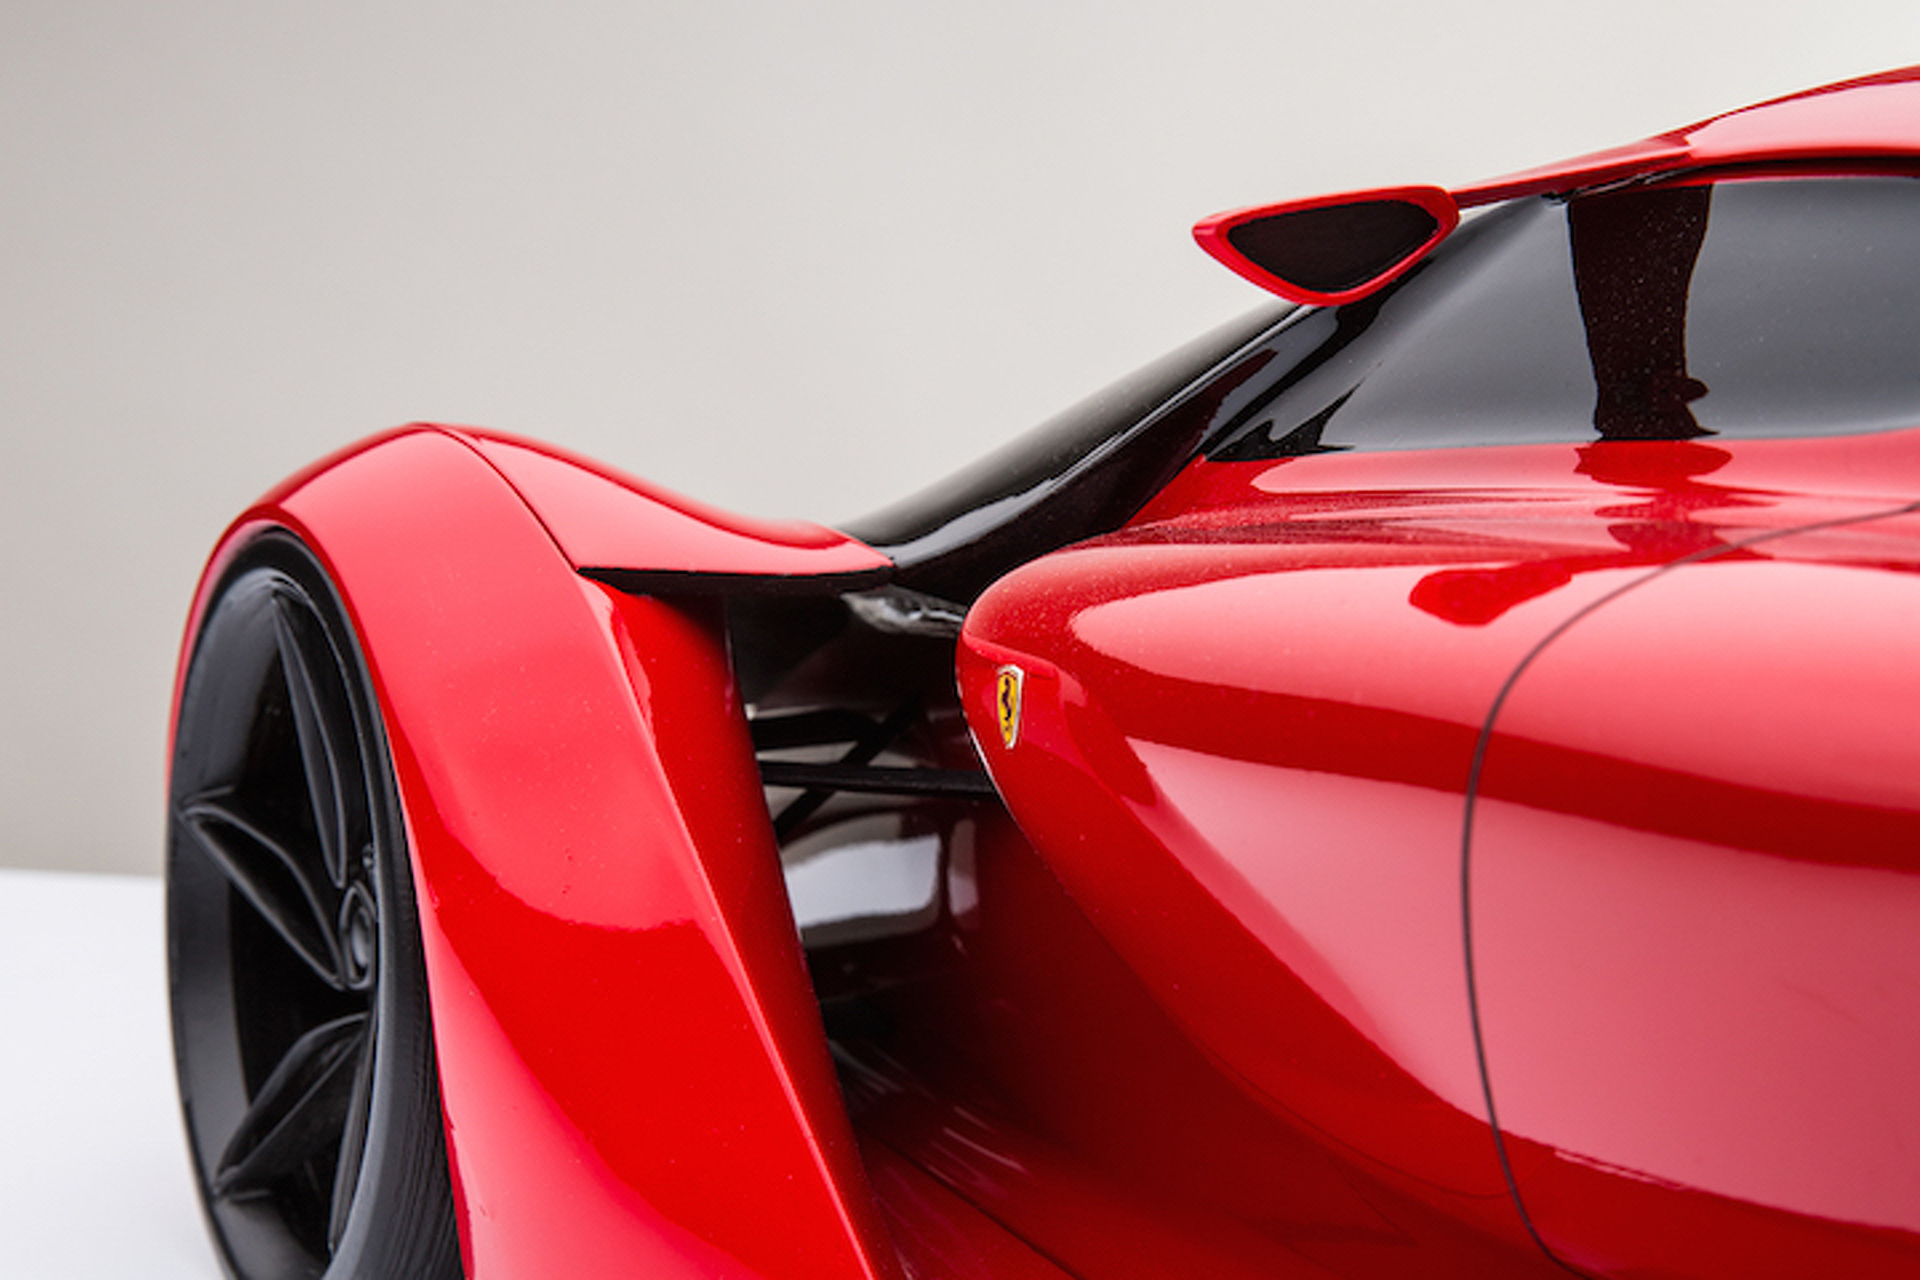 This is the 1,200-HP Ferrari Hypercar of the Future